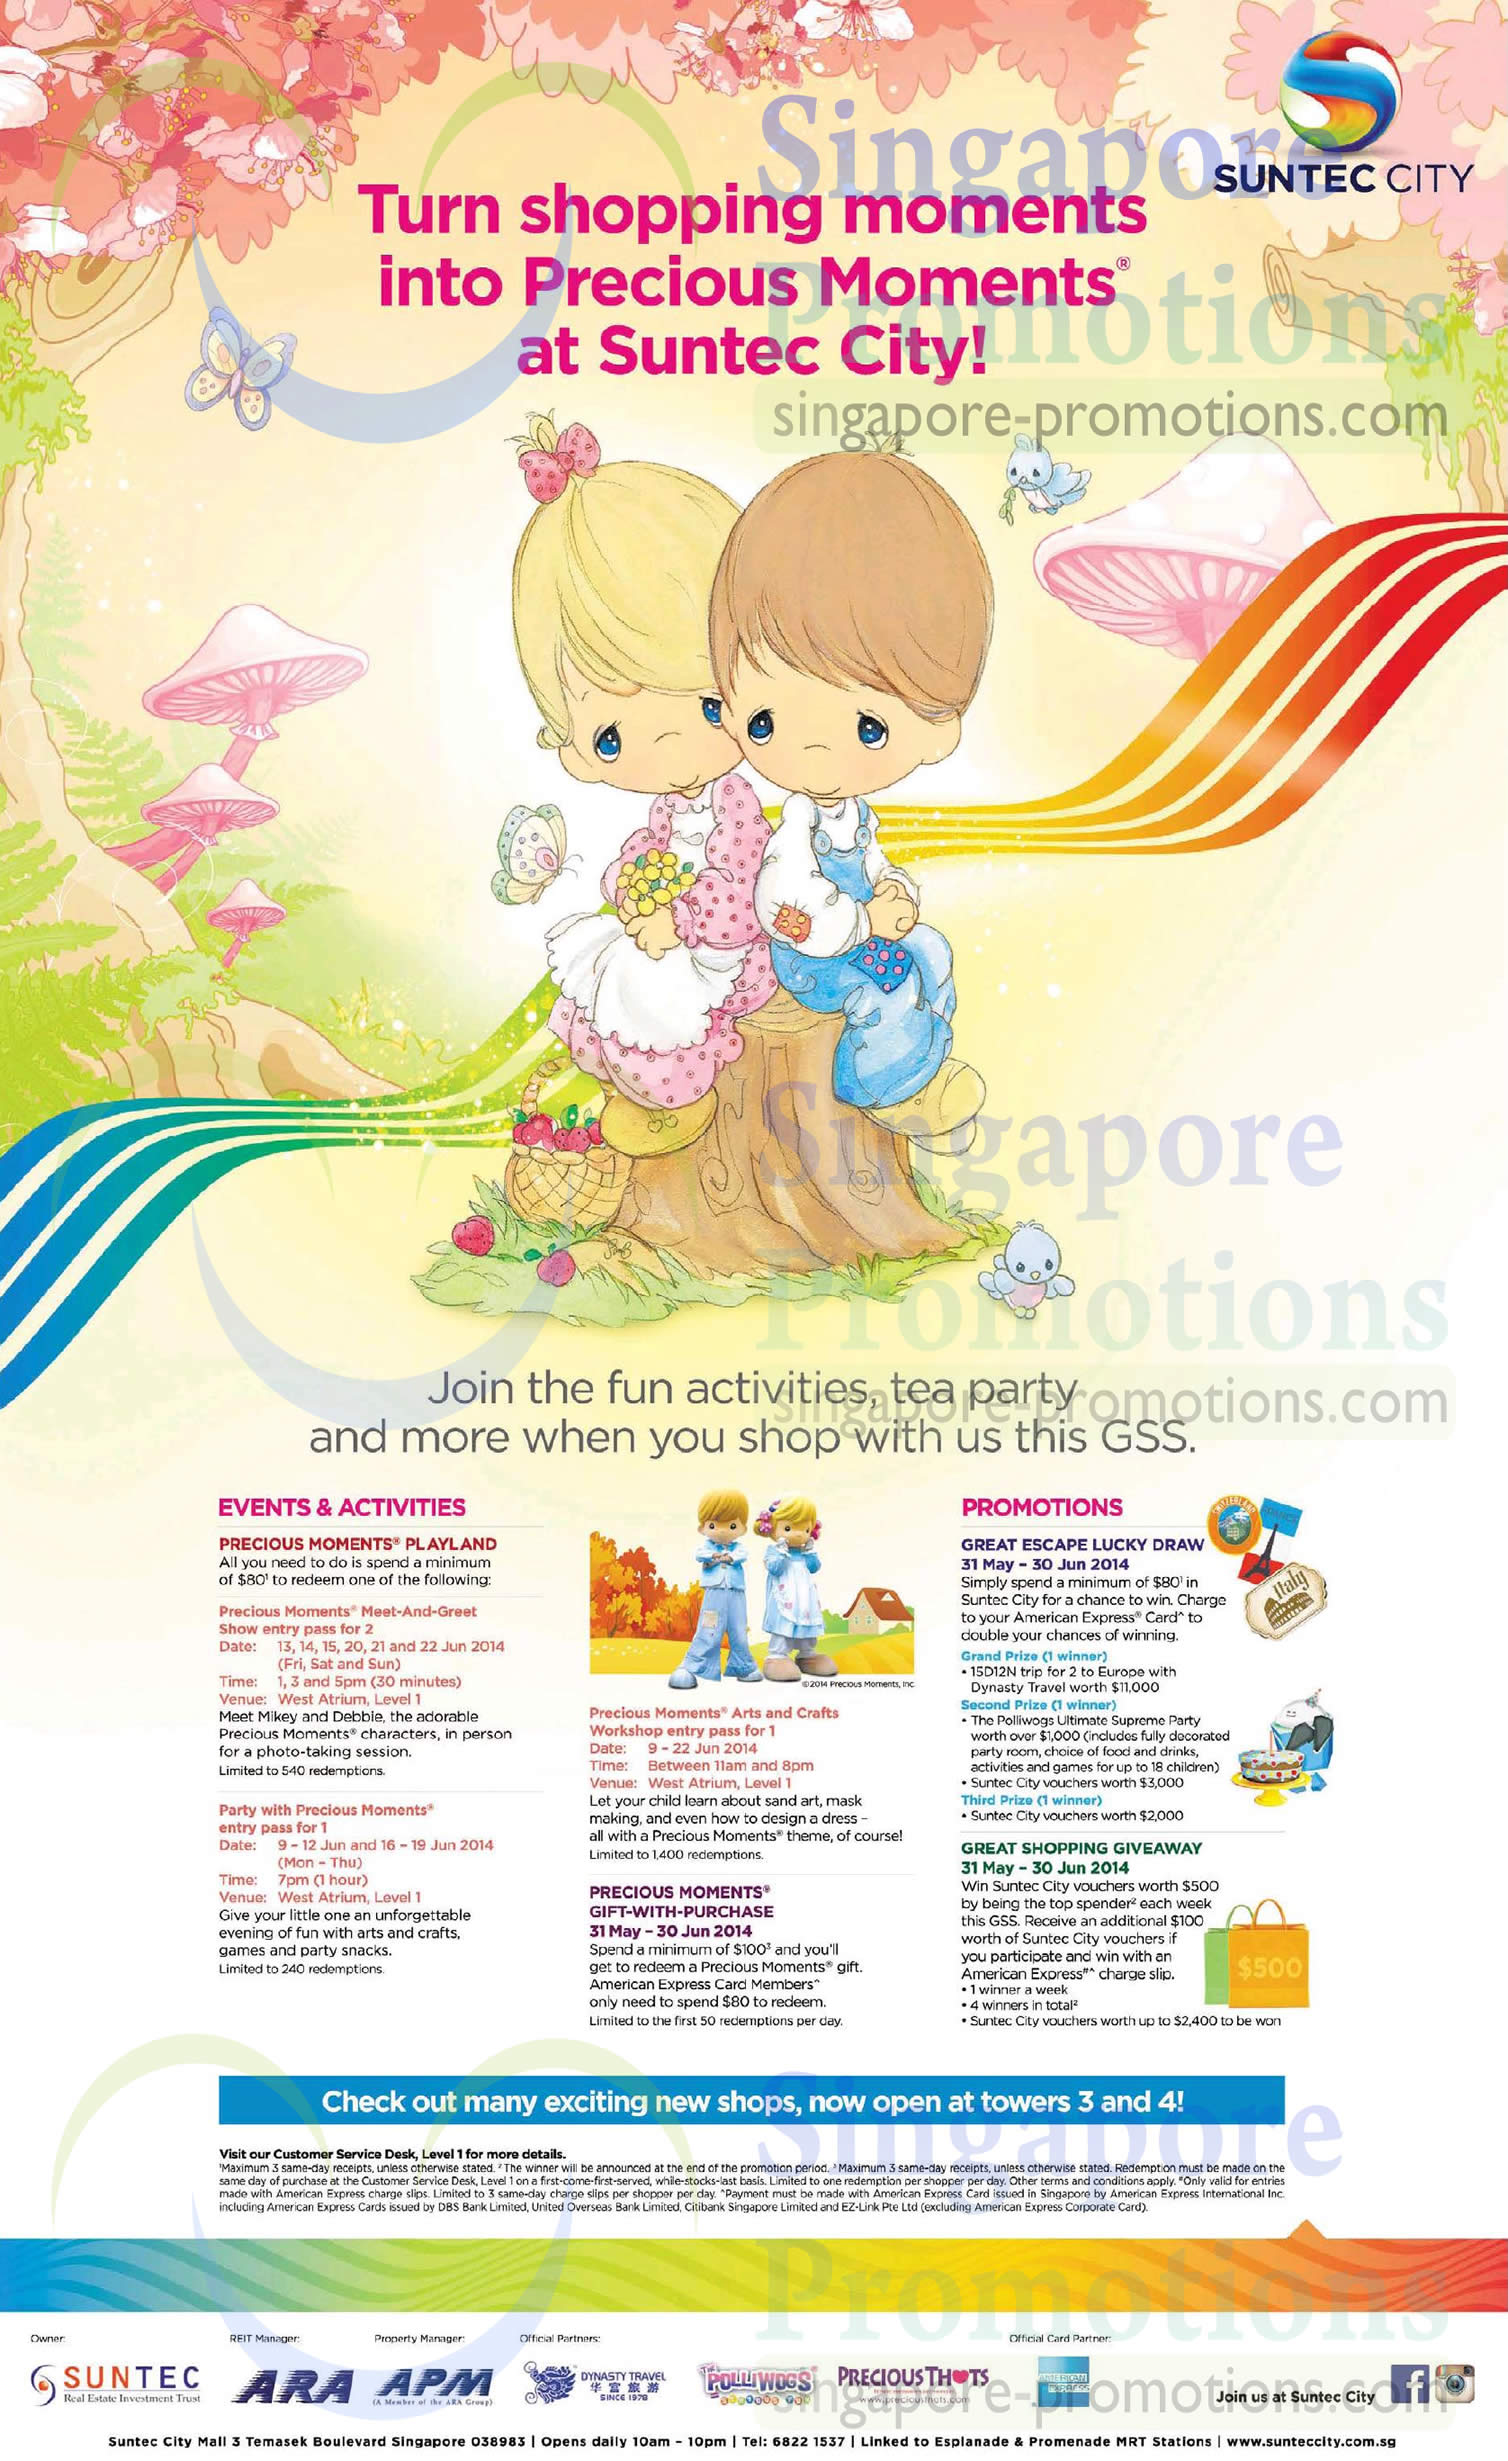 Suntec City GSS Promotions & Activities 31 May – 30 Jun 2014